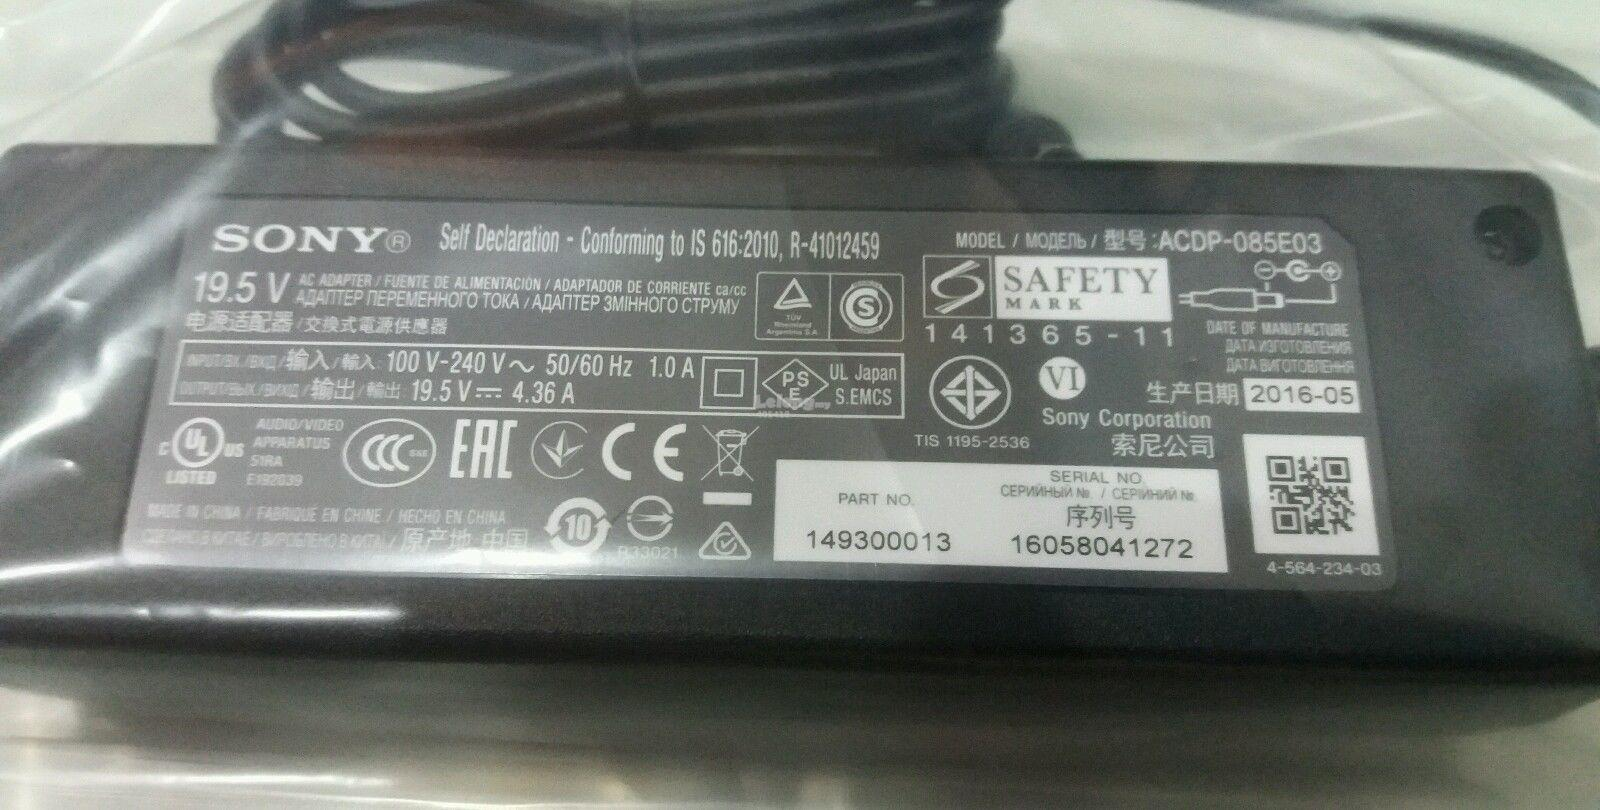 SONY POWER ADAPTER (ORIGINAL) 149300013 ACDP-085E03 19.5 V 4.36 Amps